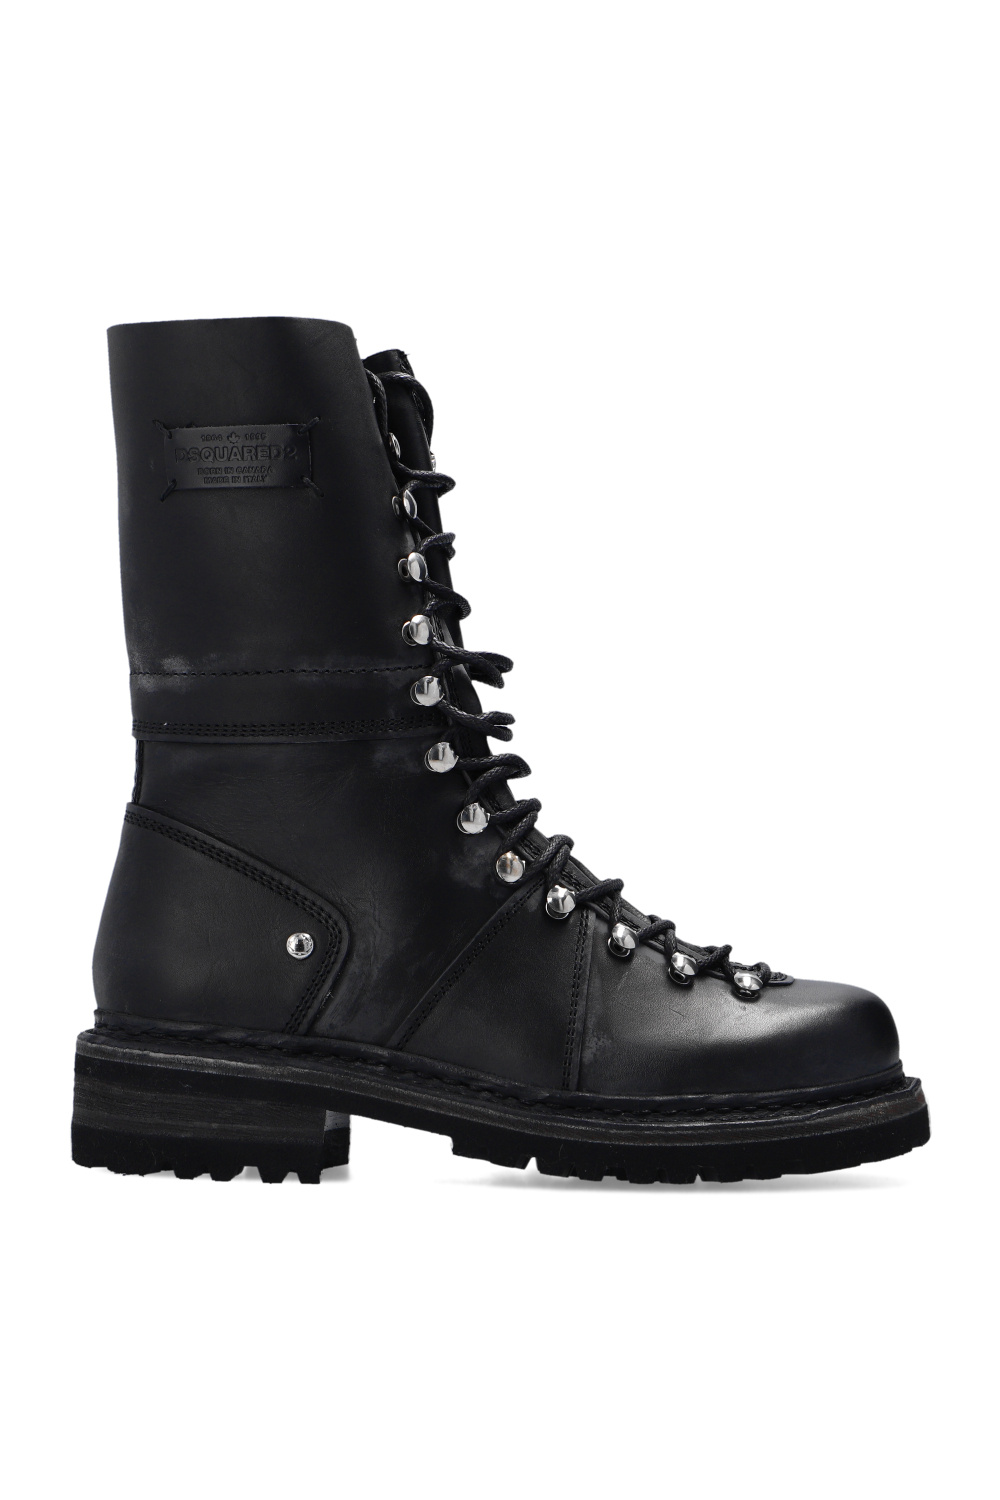 Dsquared2 'Kombat' leather boots